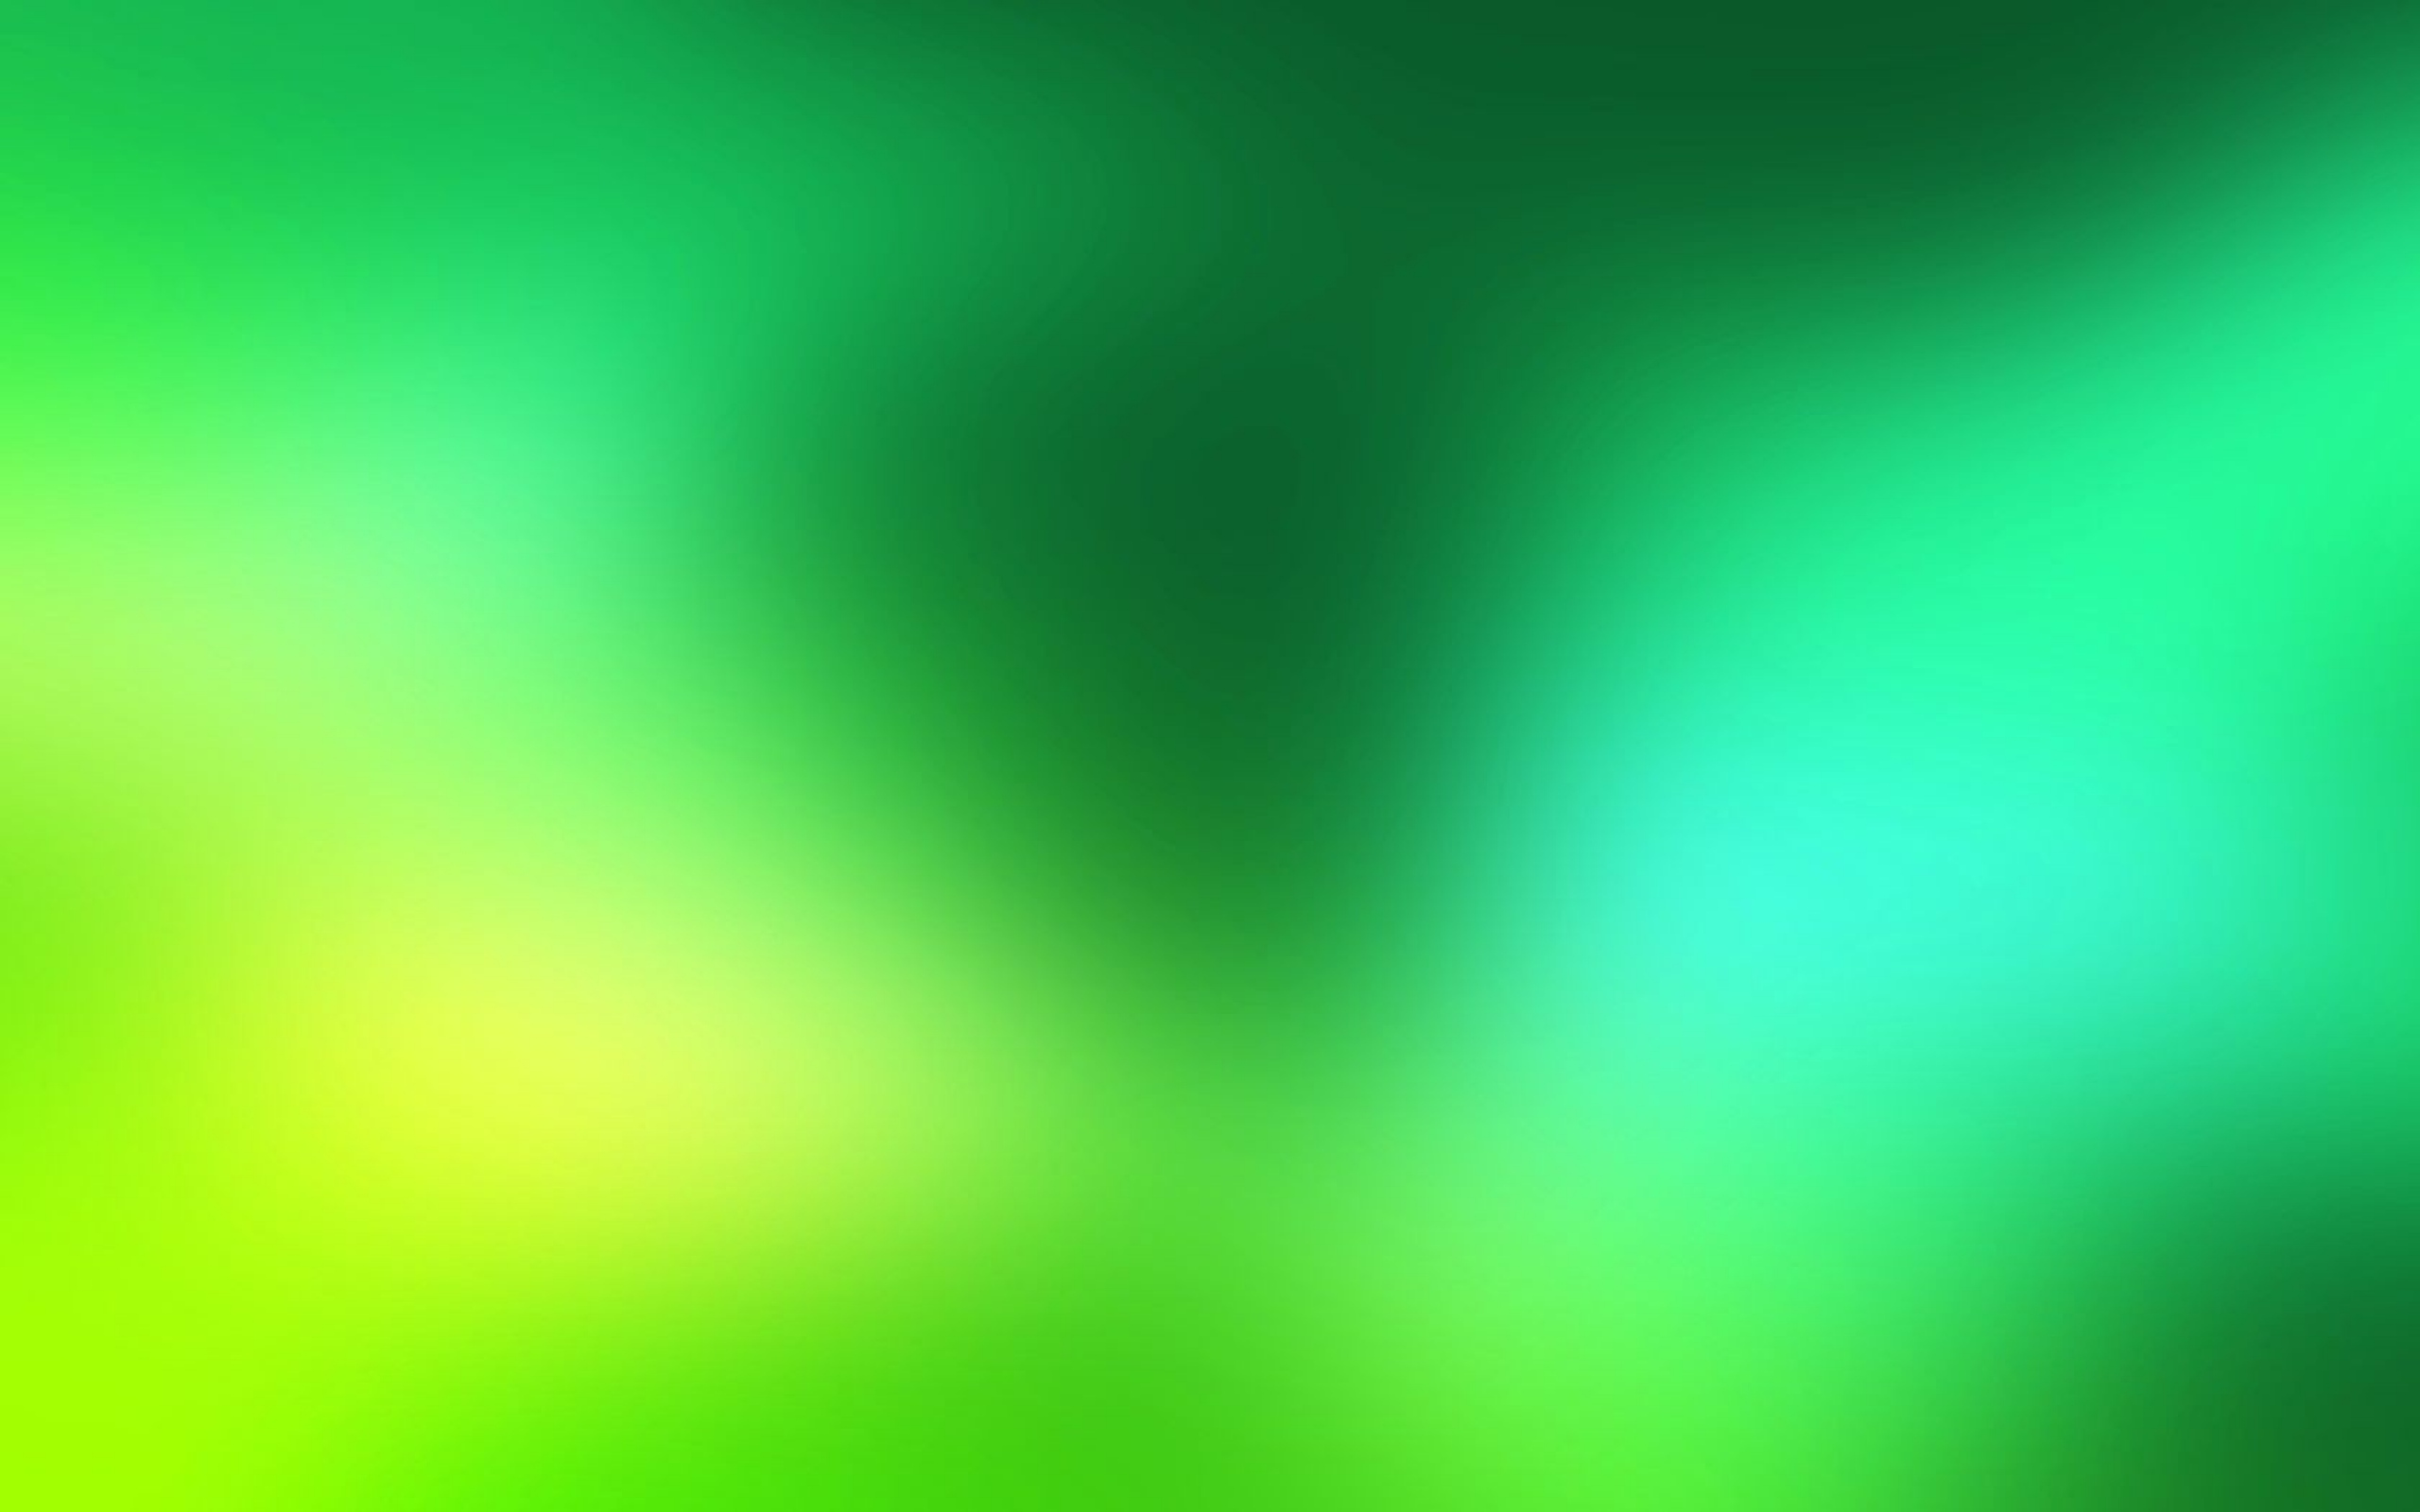 Download Green Shade Wallpaper Gallery